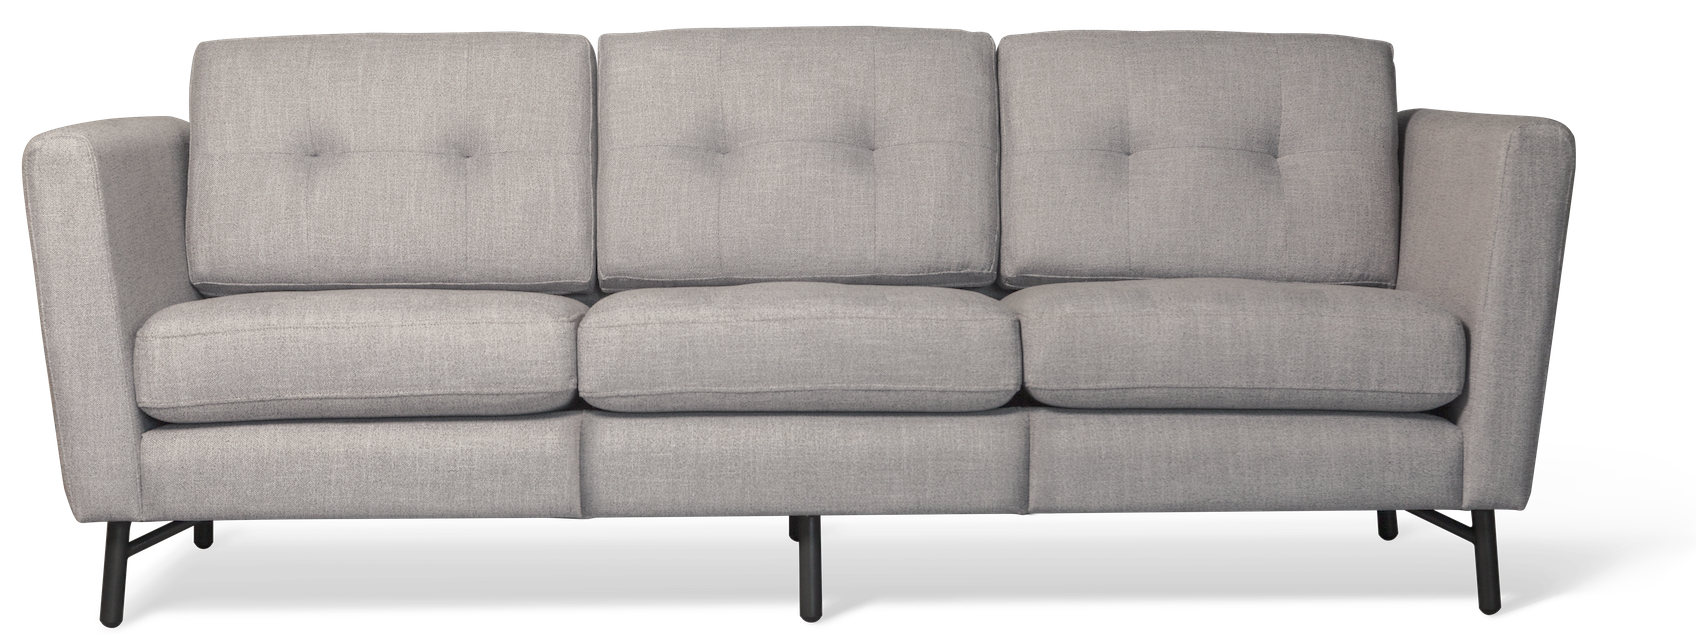 Couch png. File mart